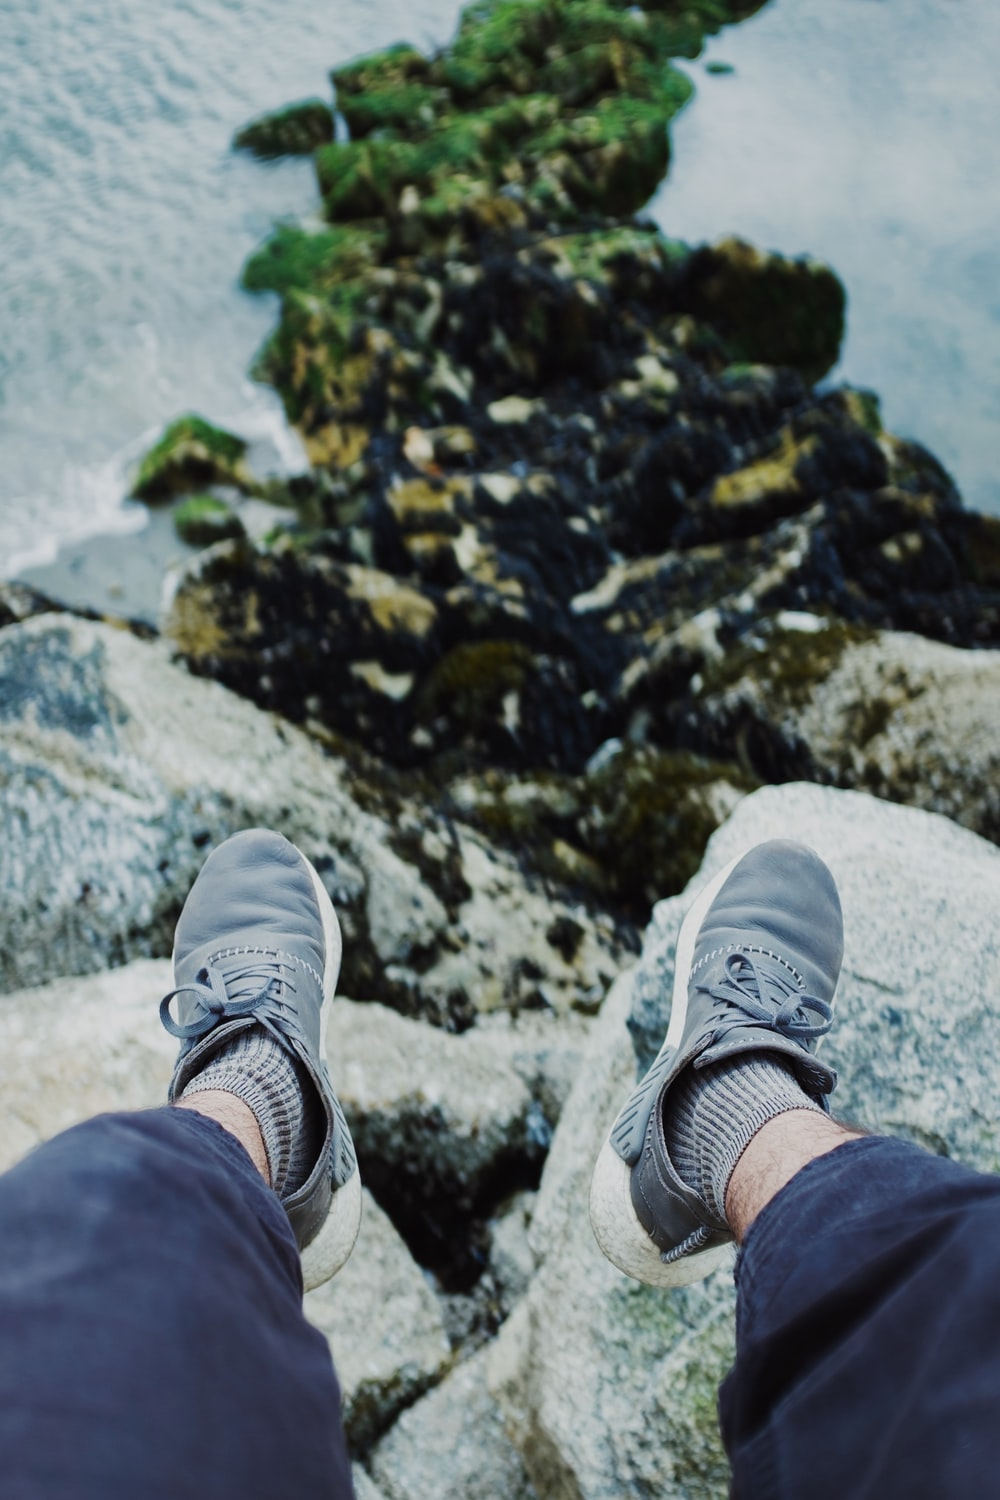 person in blue pants and white sneakers sitting on rock